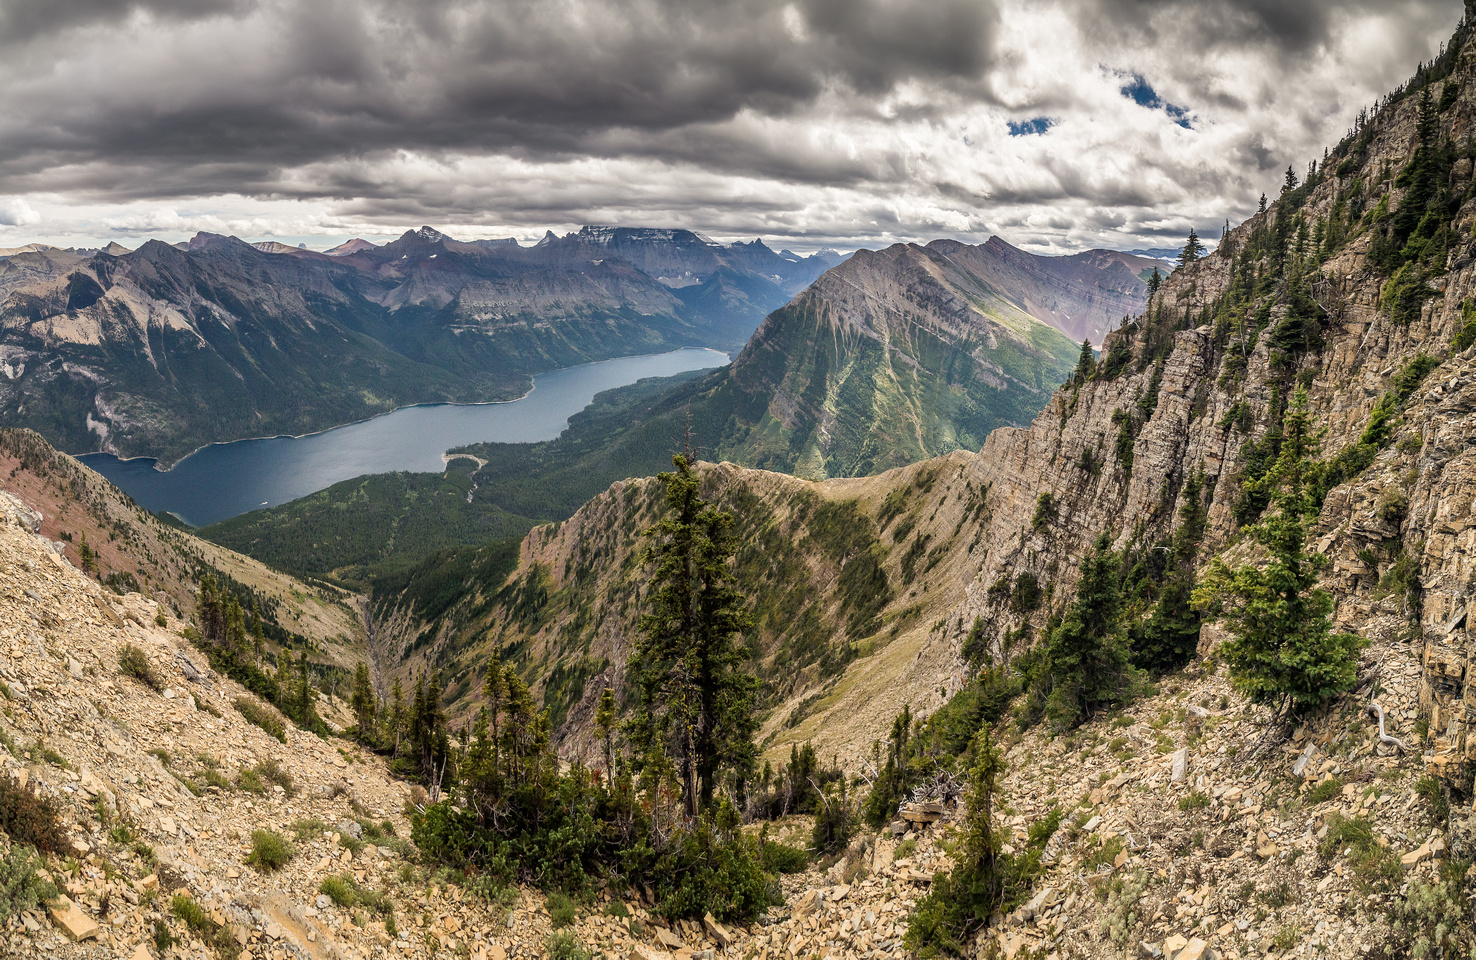 Another great view towards the SE ridge, Upper Waterton Lake and along the traverse (R).